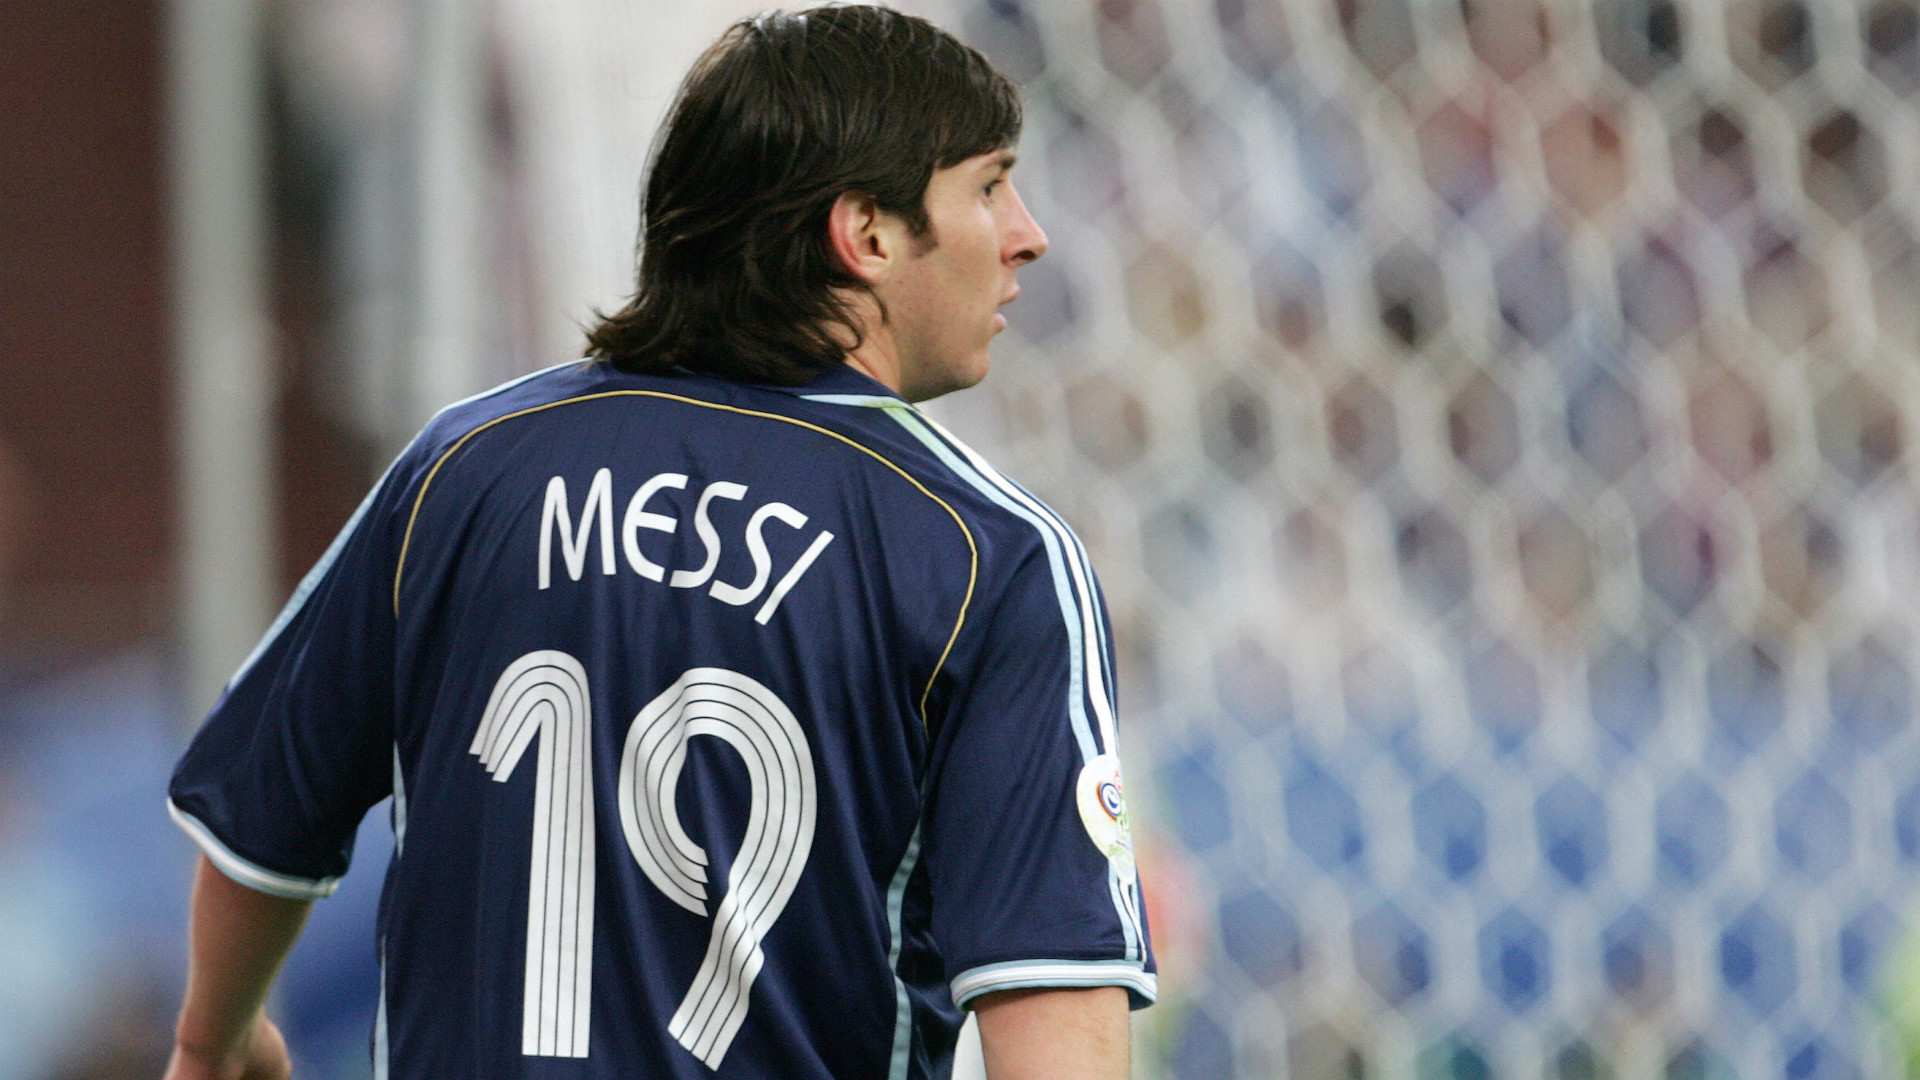 Lionel Messi World Cup 2006